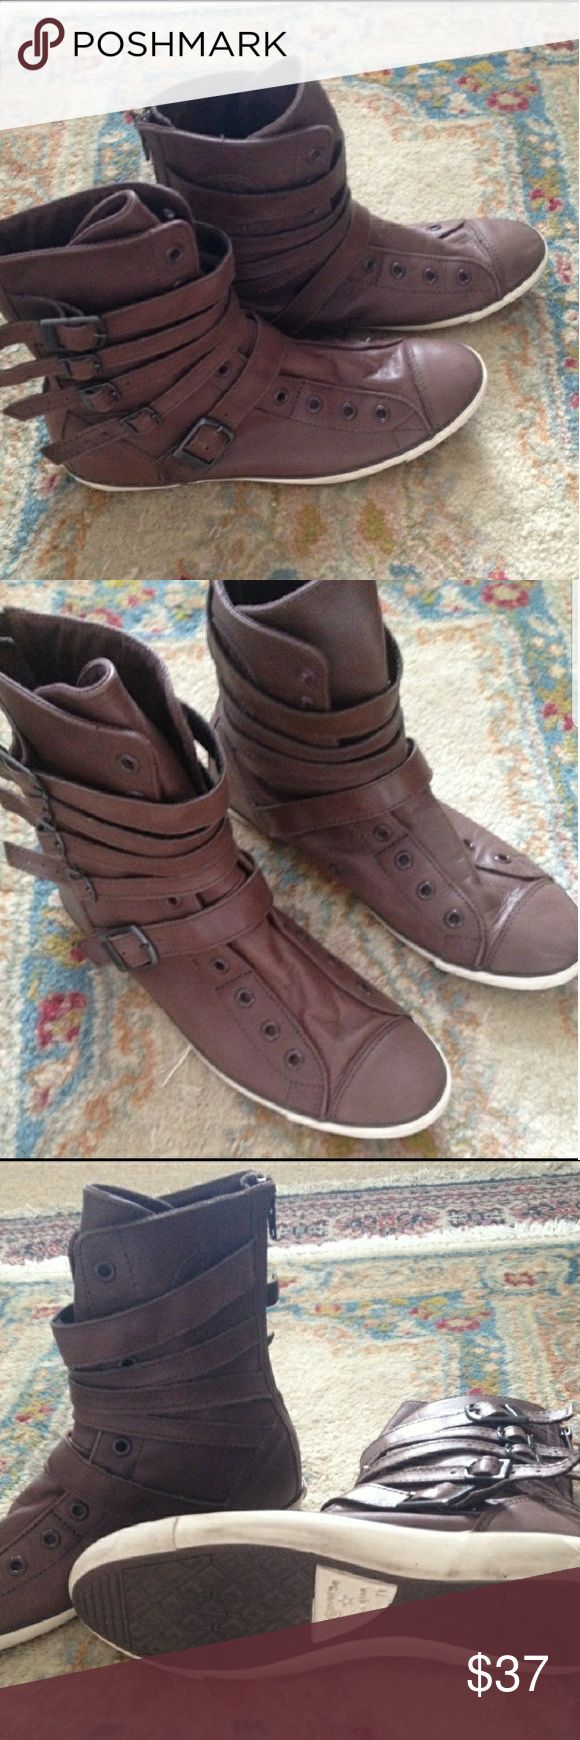 Authentic leather high top converse Beautiful and comfortable brown high top leather converse Converse Shoes